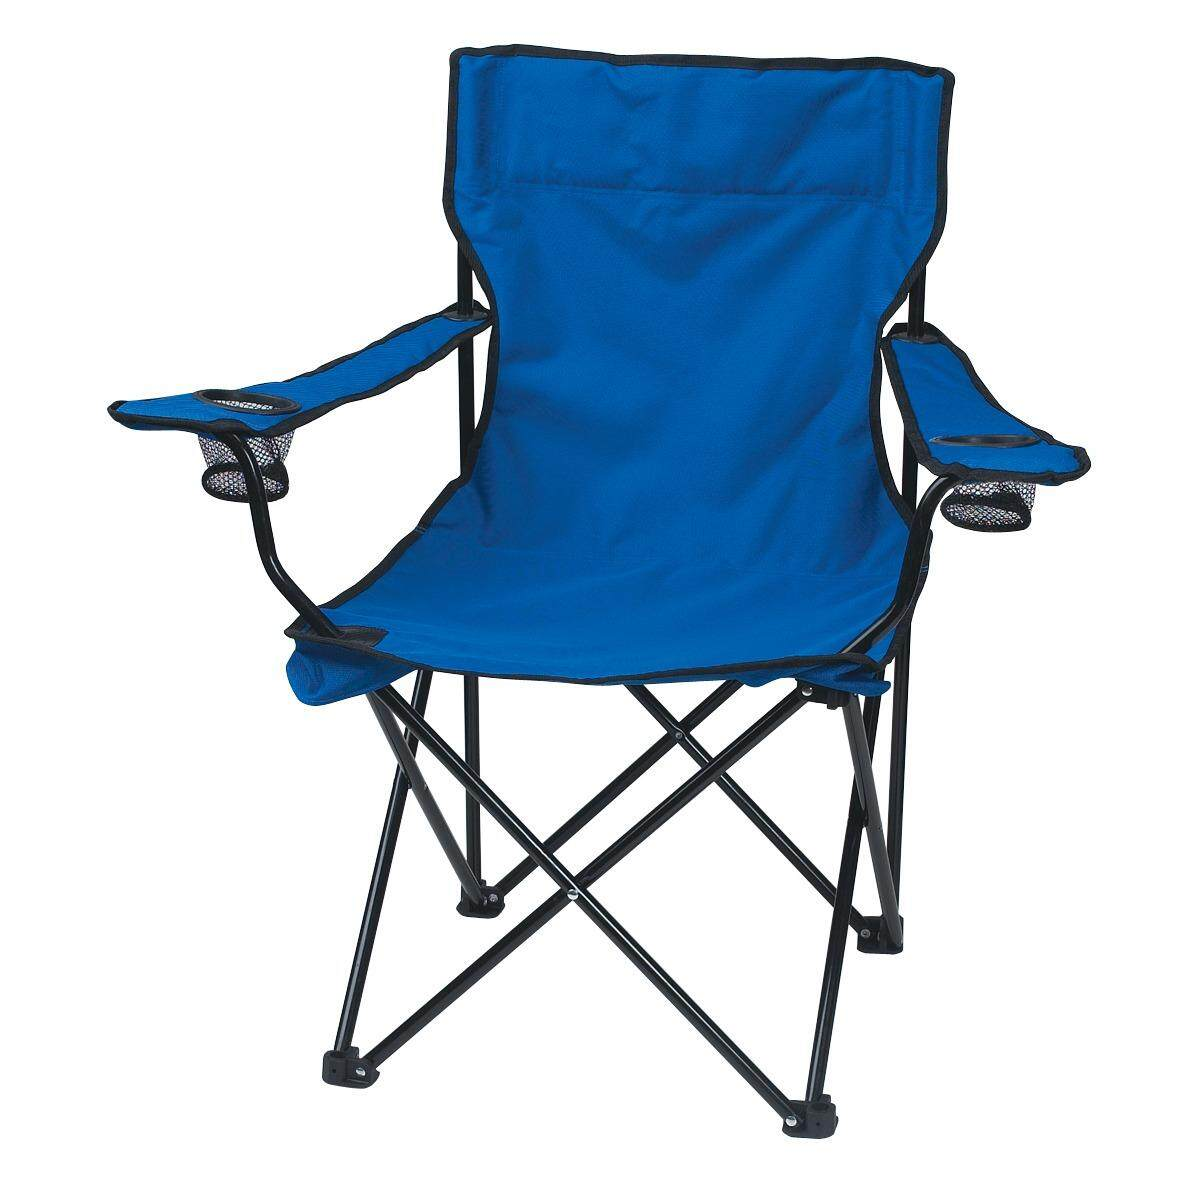 Fold Up Chair With Canopy Ecosport Portable Folding Picnic Outdoor Camping Chairs